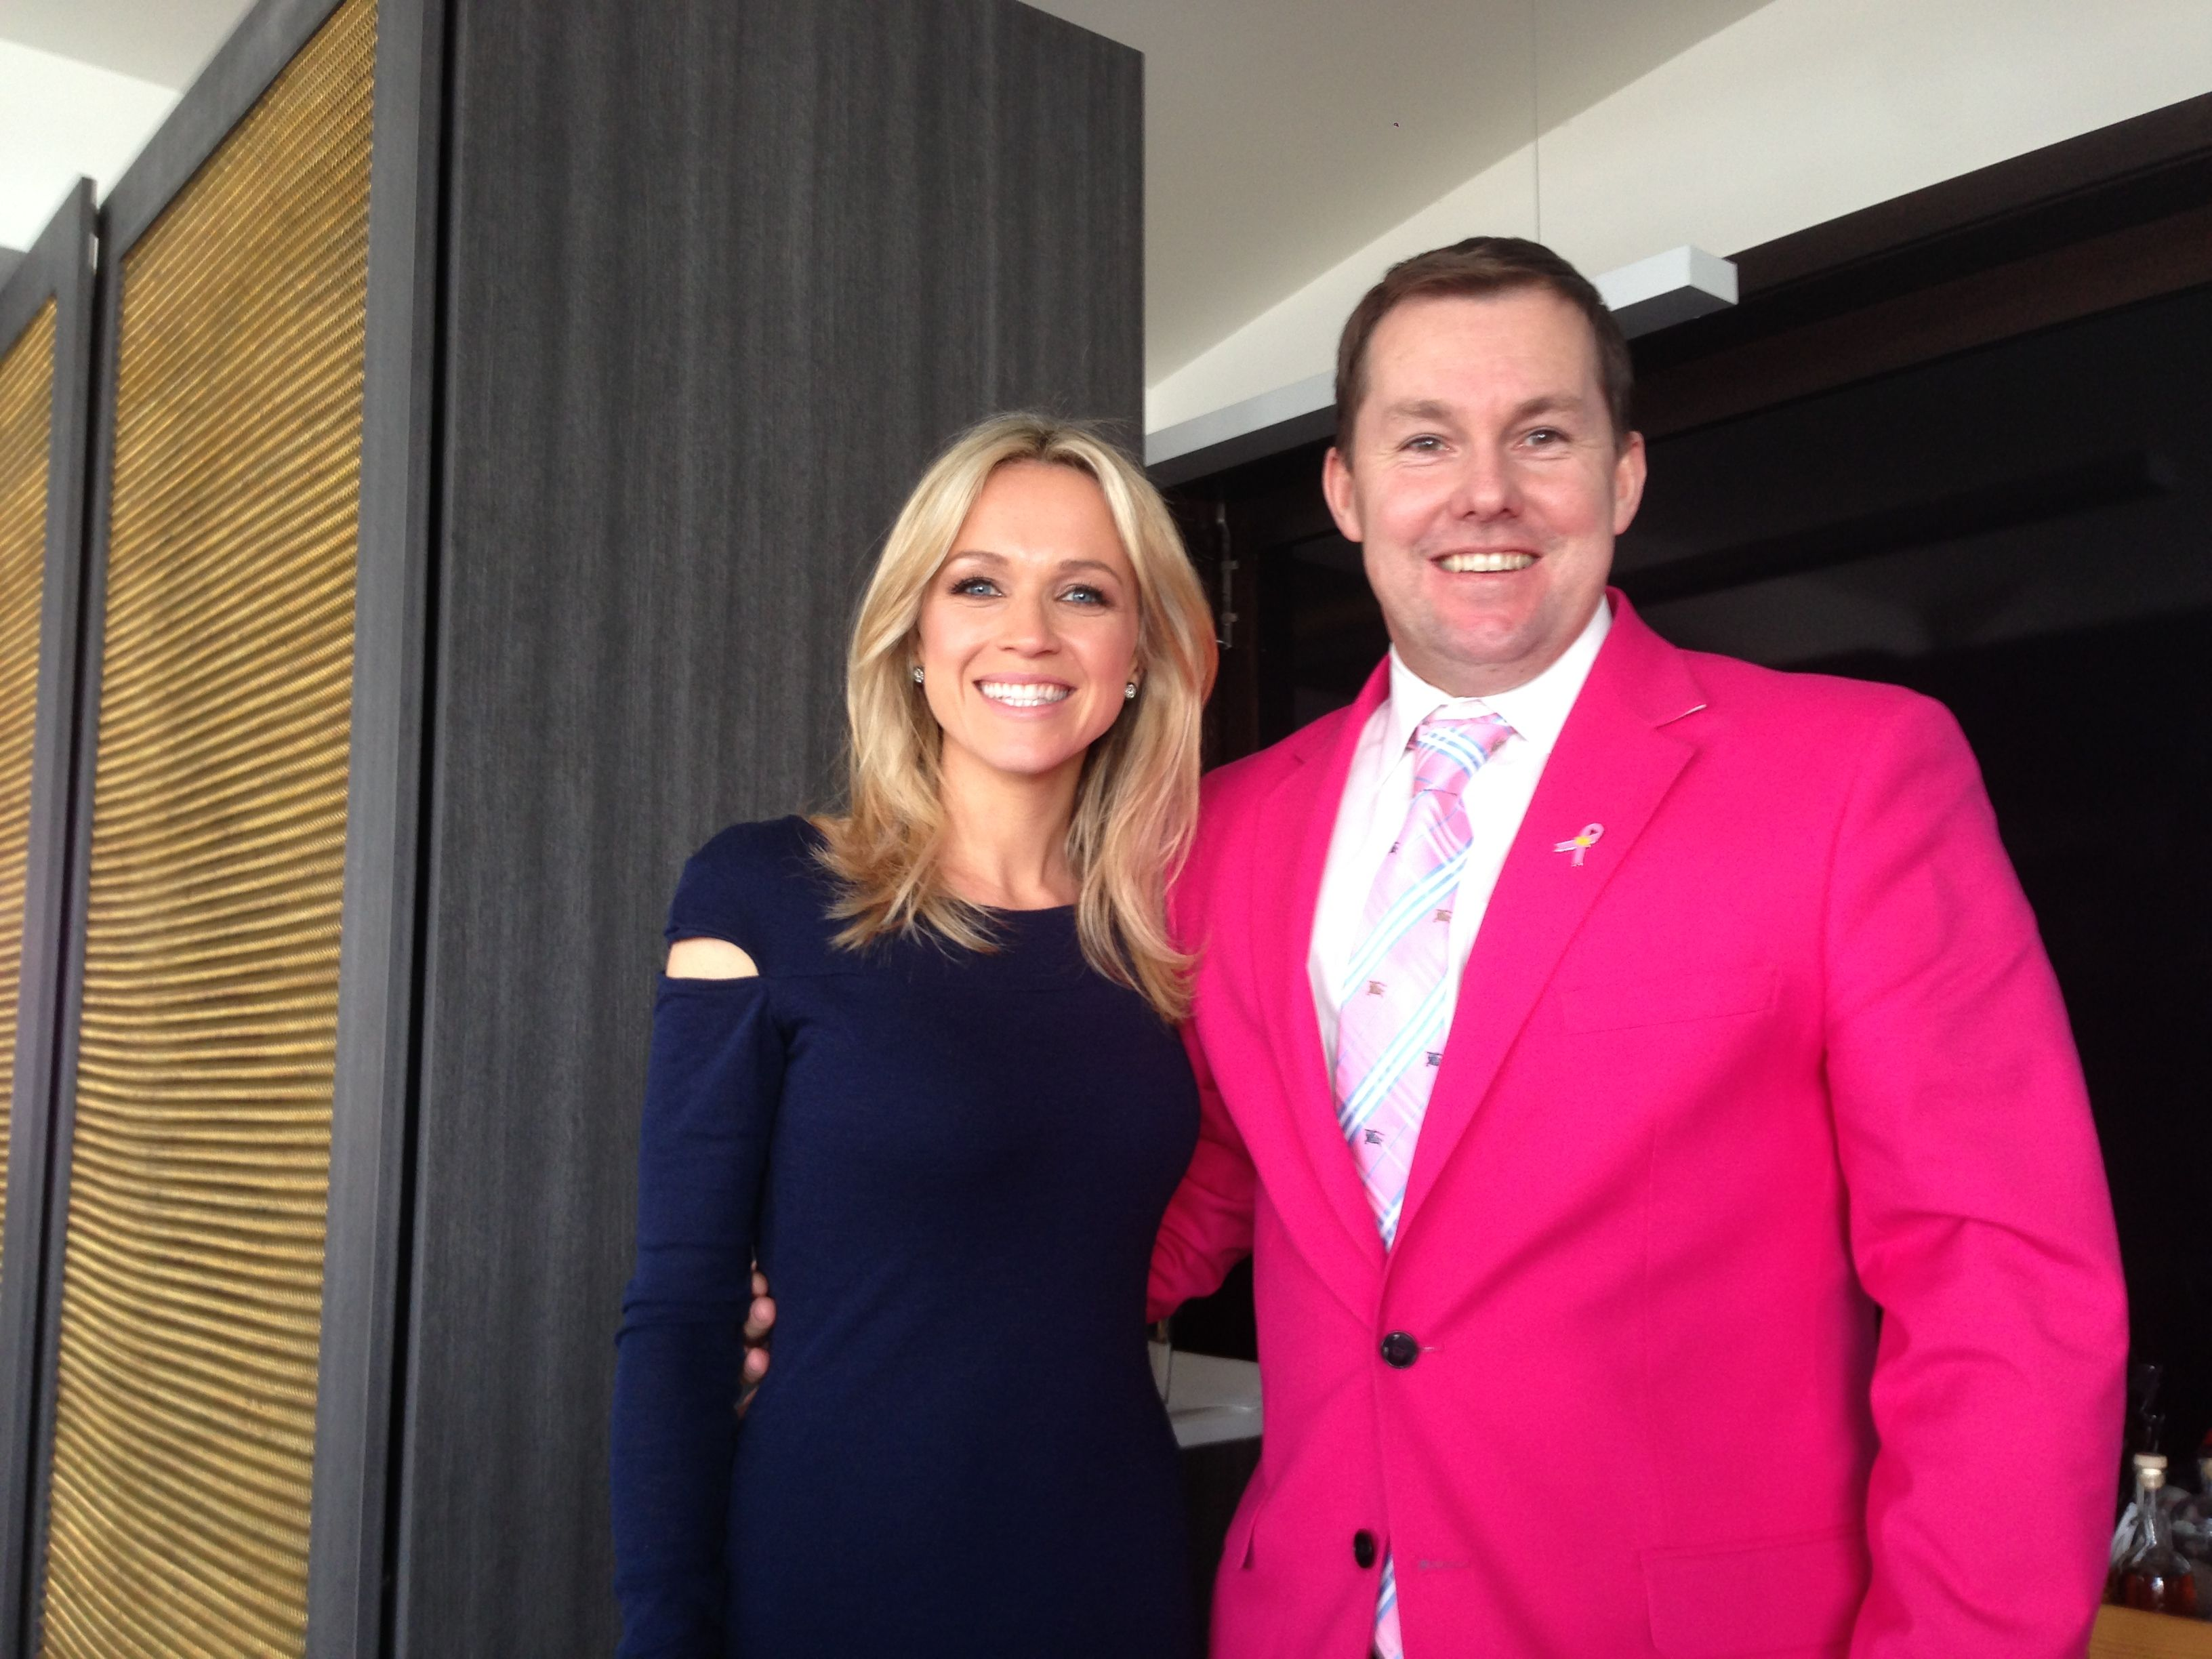 Auctioneer Will Hampson with Channel 7's Sarah Cummings at Ormeggio on the Spit for Lunch as part of the Aqua dinning series week. Very Pleased to announce we raised over $75,000 in 5 days for Cancer Council NSW... #Fighting #Cancer #Saving #Lives #Charity #Auctions #Helping #People